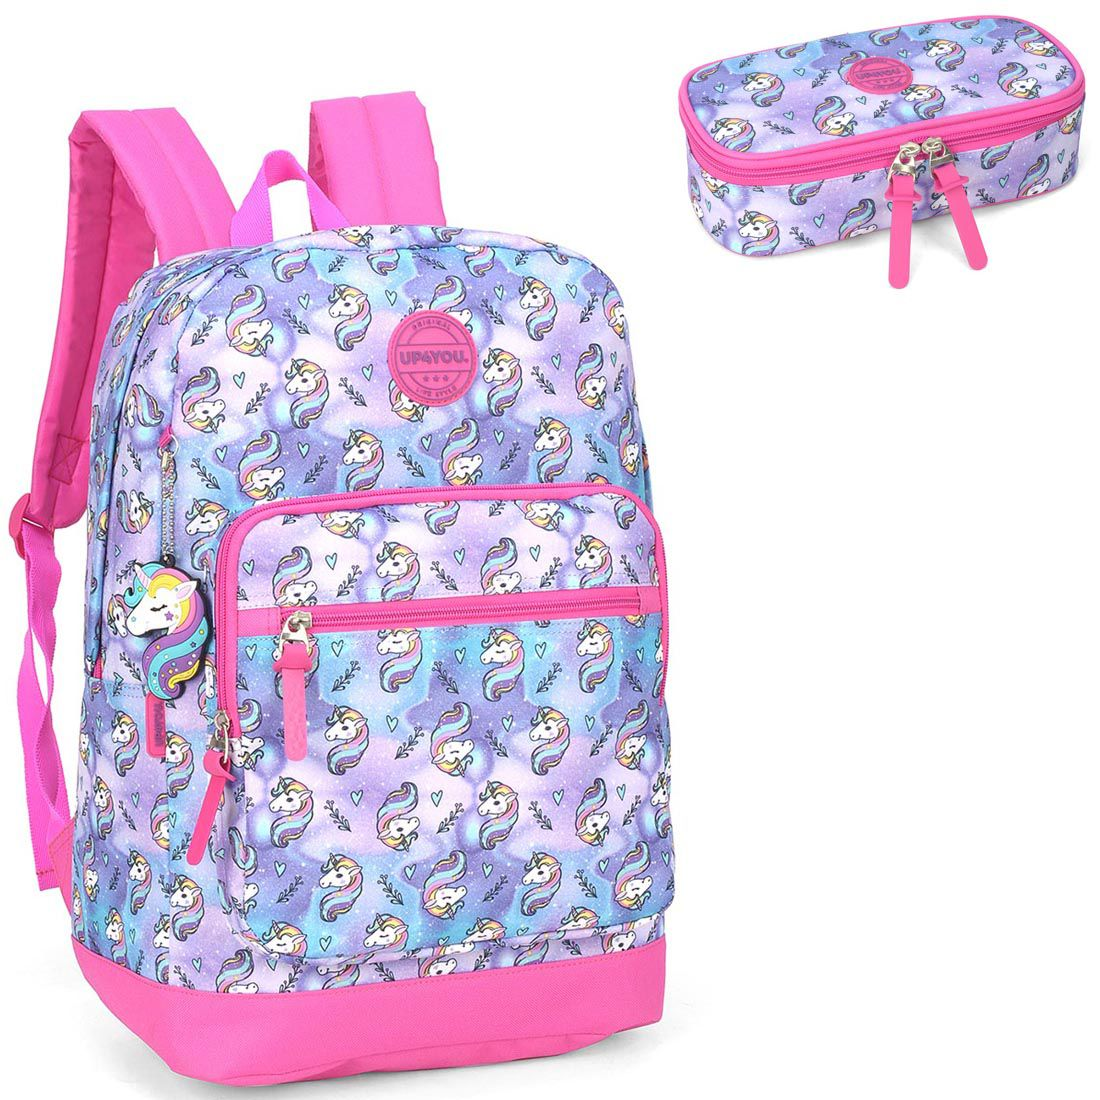 Mochila Feminina Up4you Unicórnio MS45765UP com Estojo